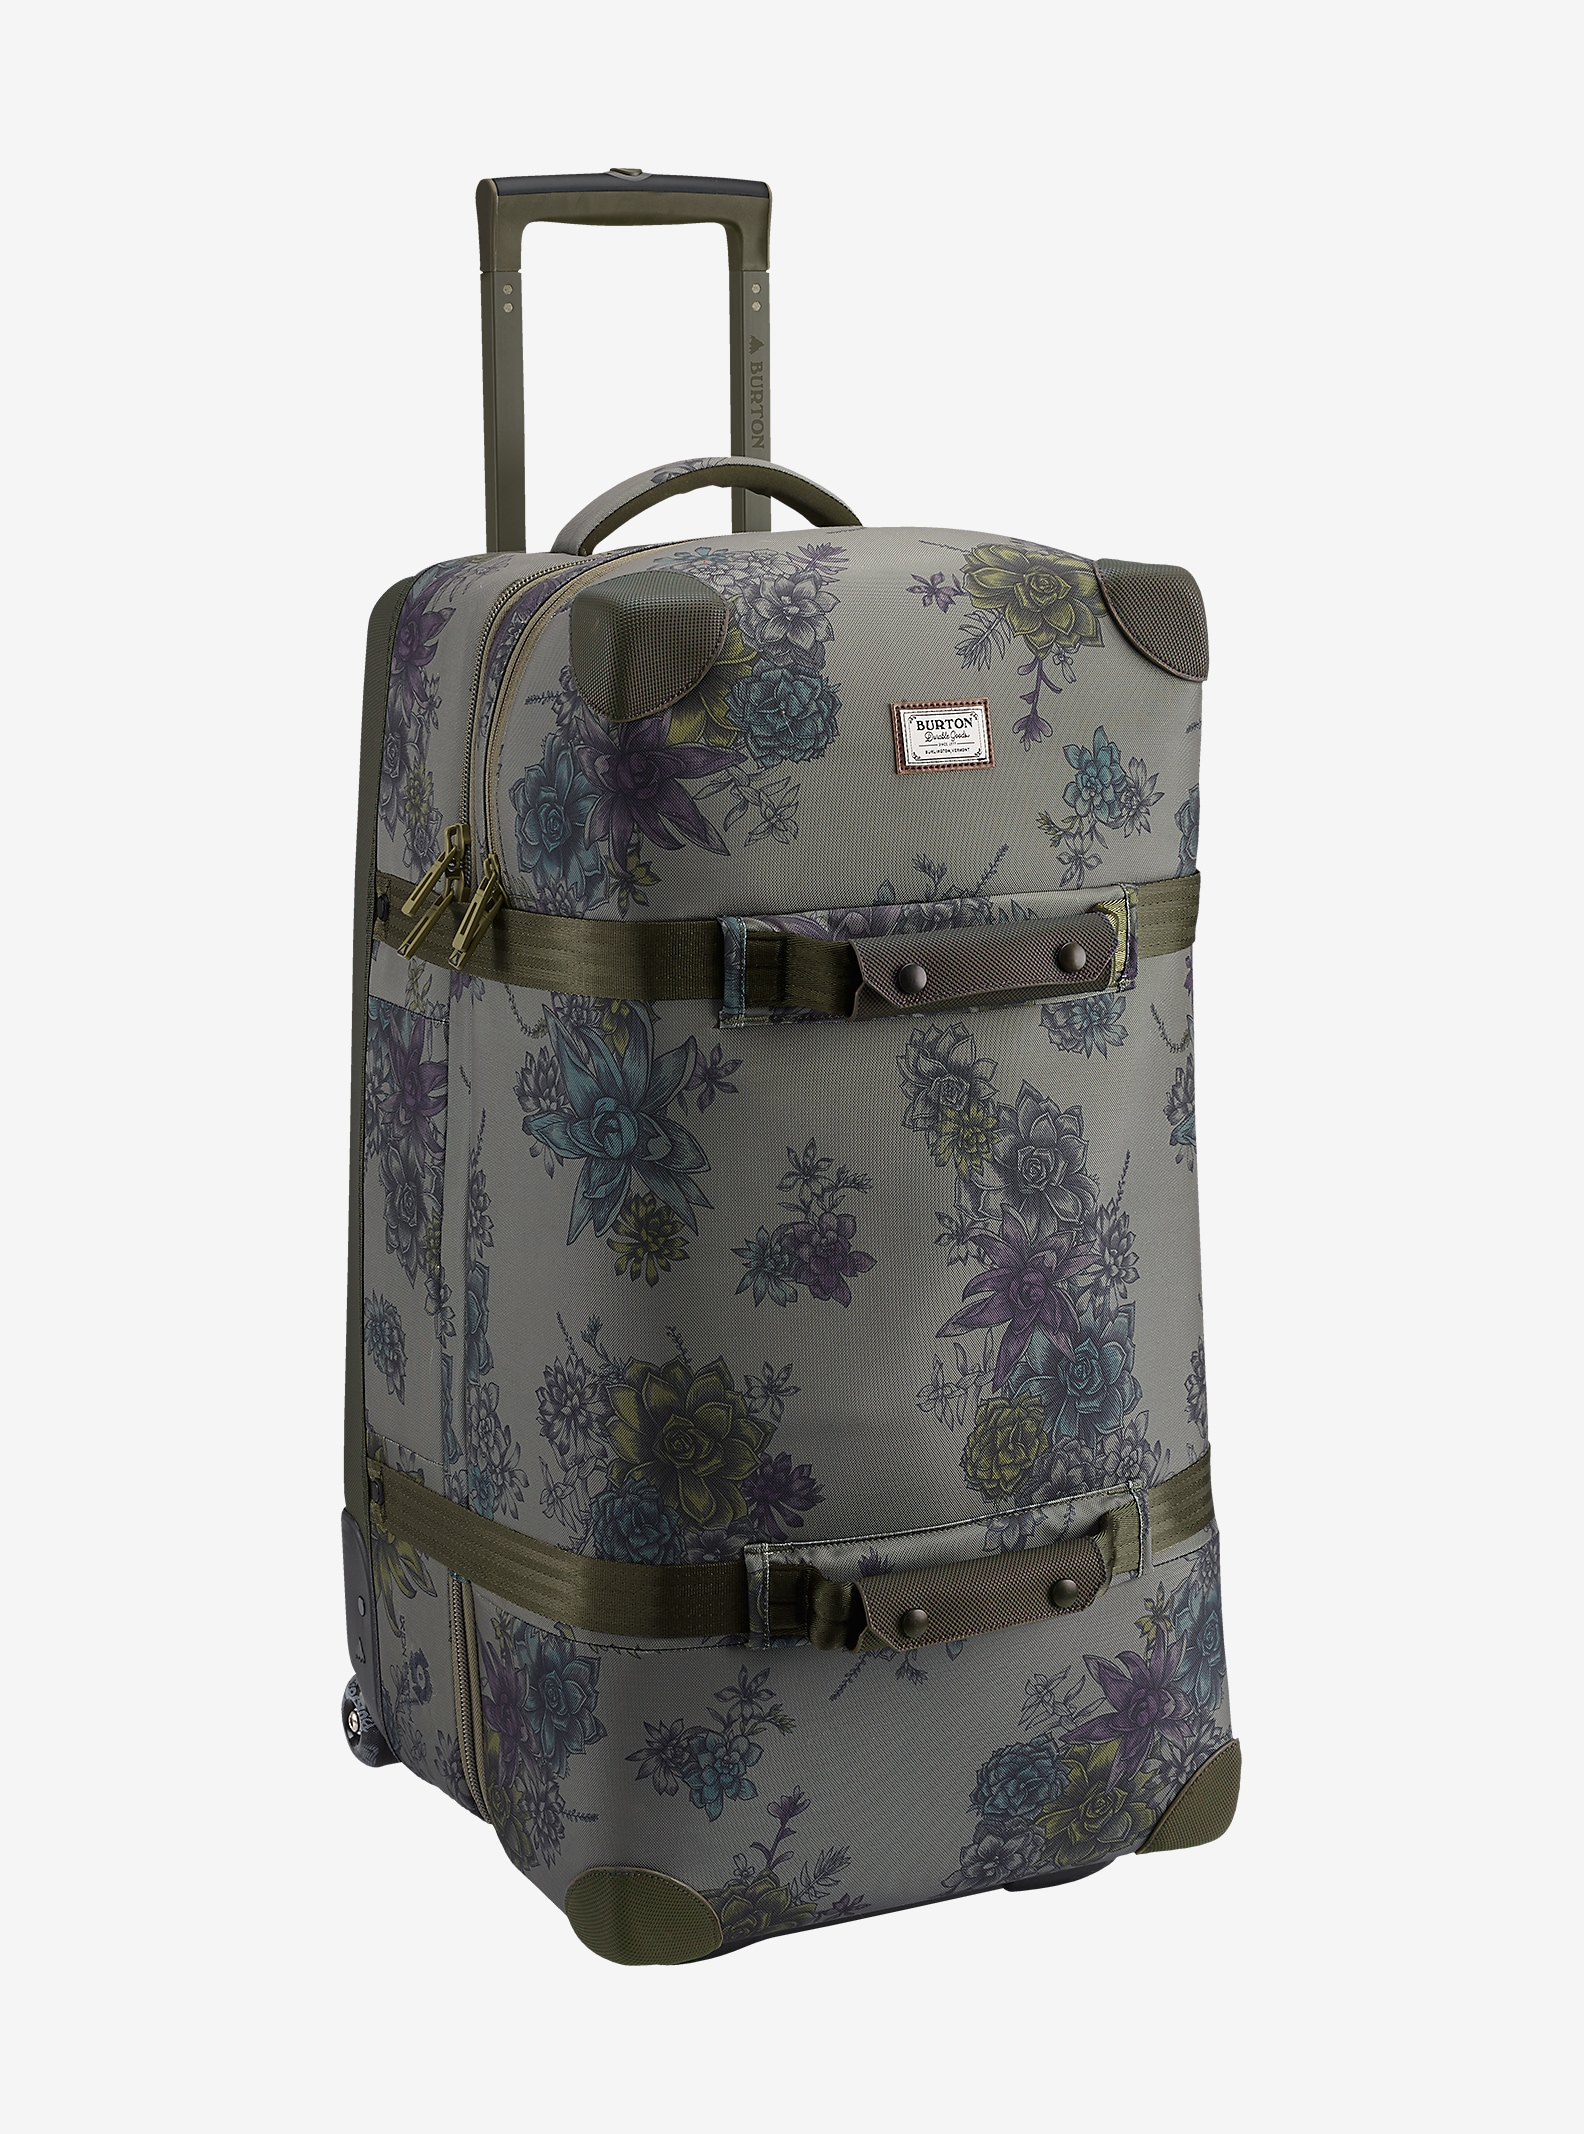 Burton Wheelie Double Deck Travel Bag shown in Succulent Camo [bluesign® Approved Fabric]